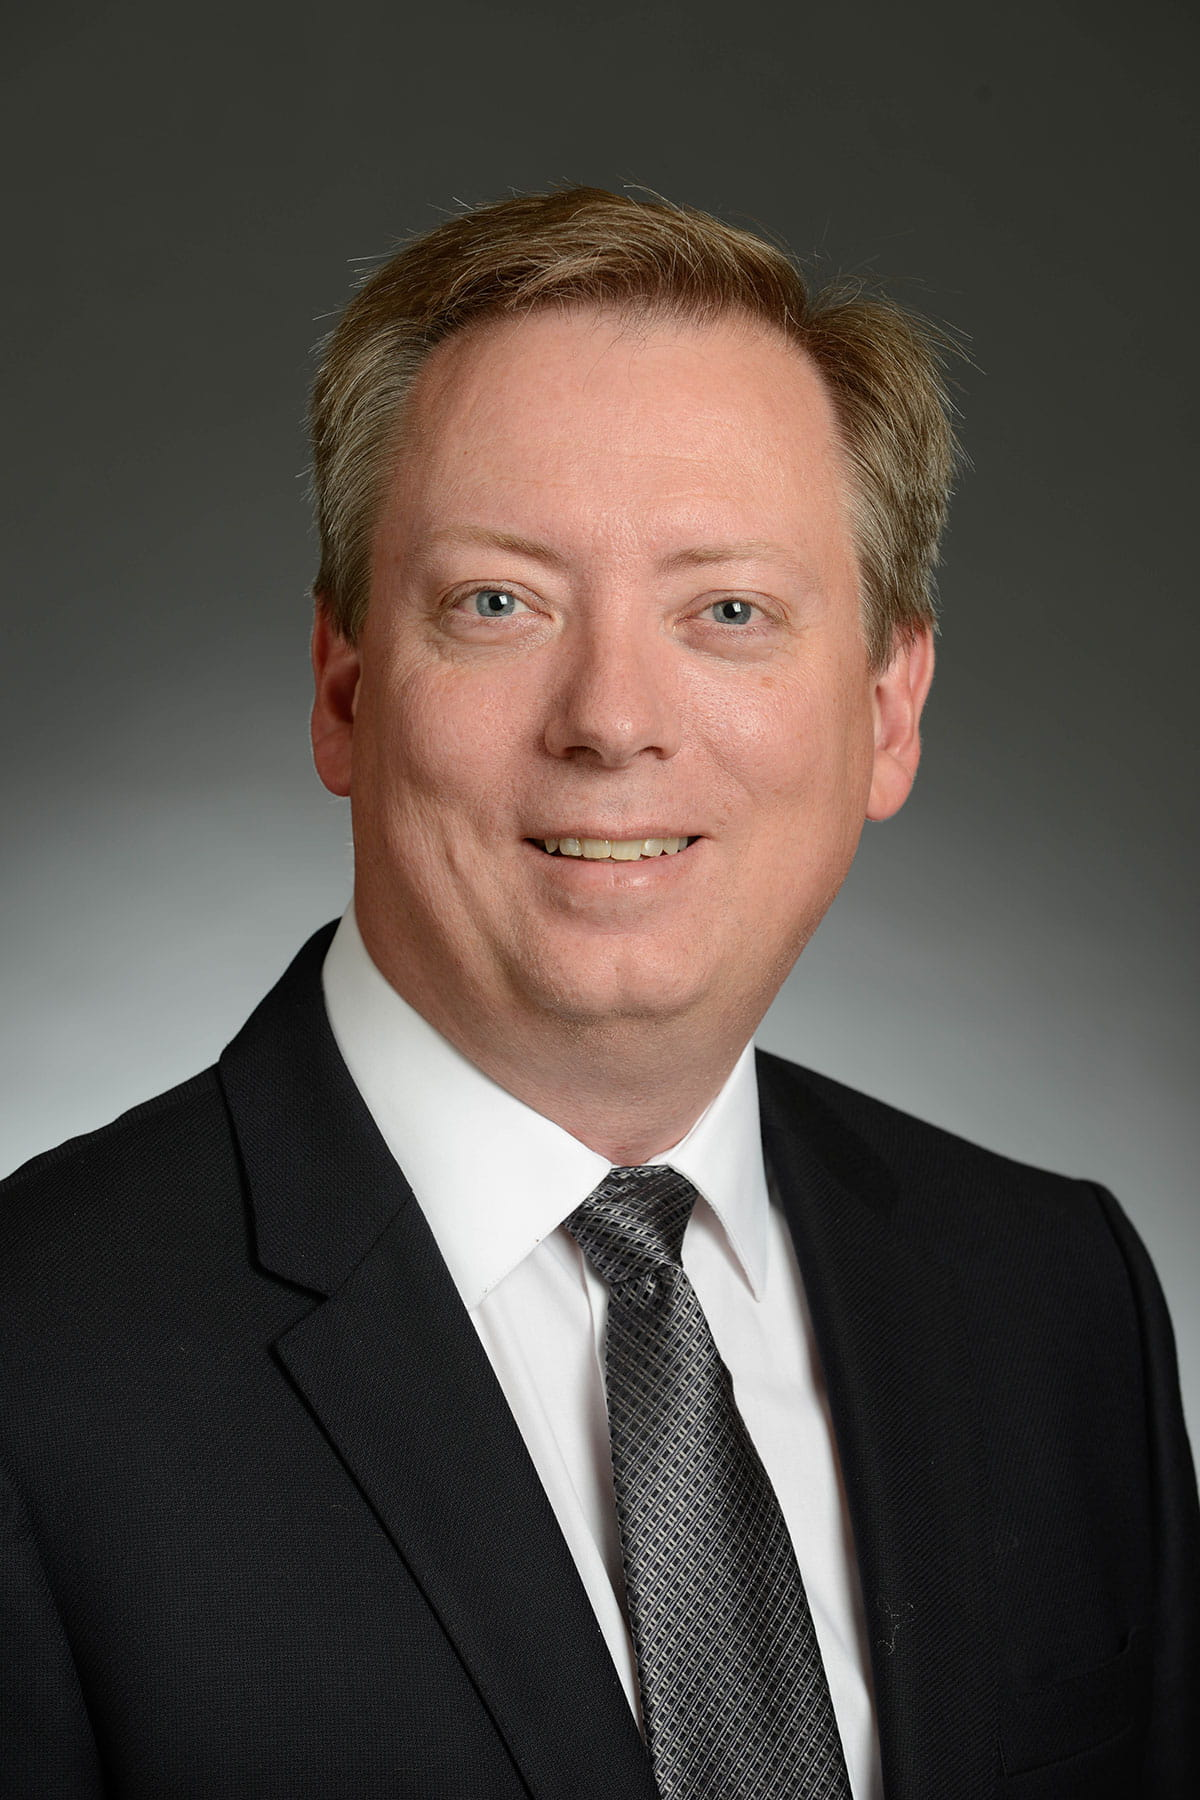 Paul S. Kingma, MD, PhD